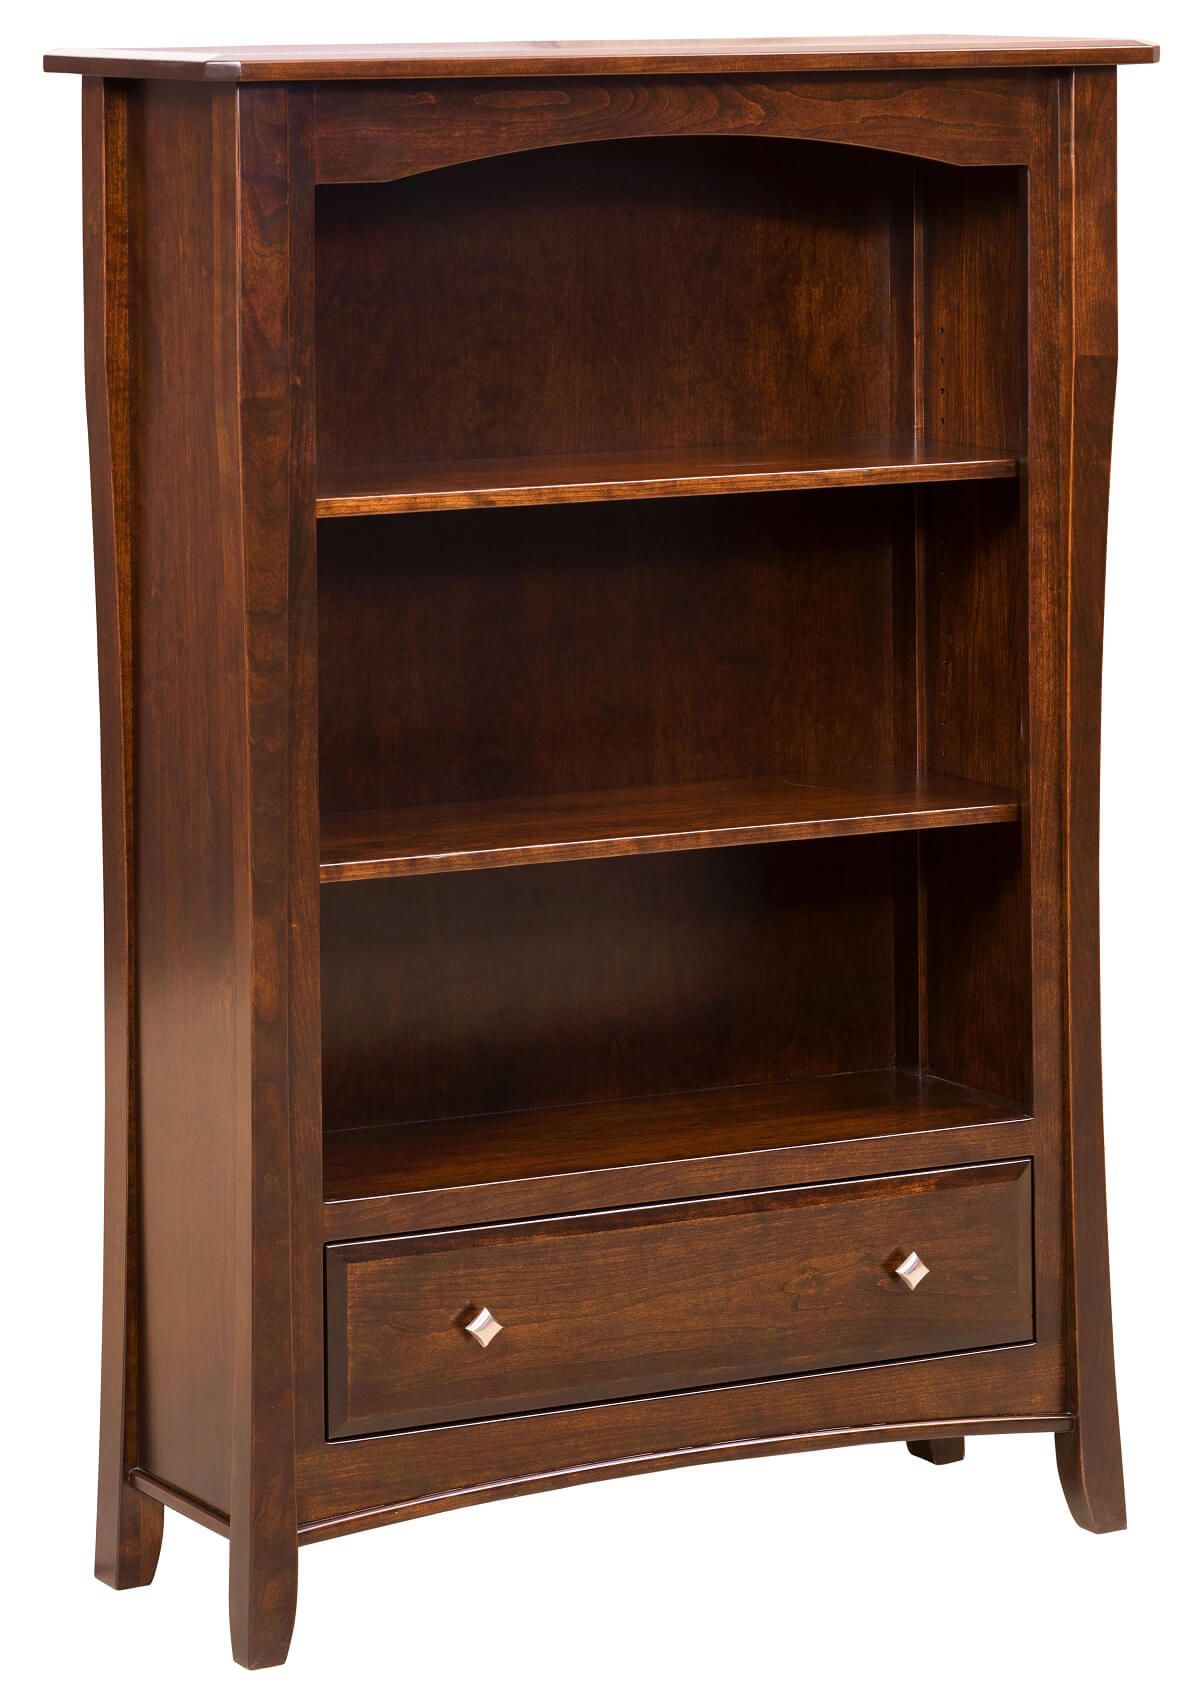 Luxembourg Kid's Bedroom Bookcase